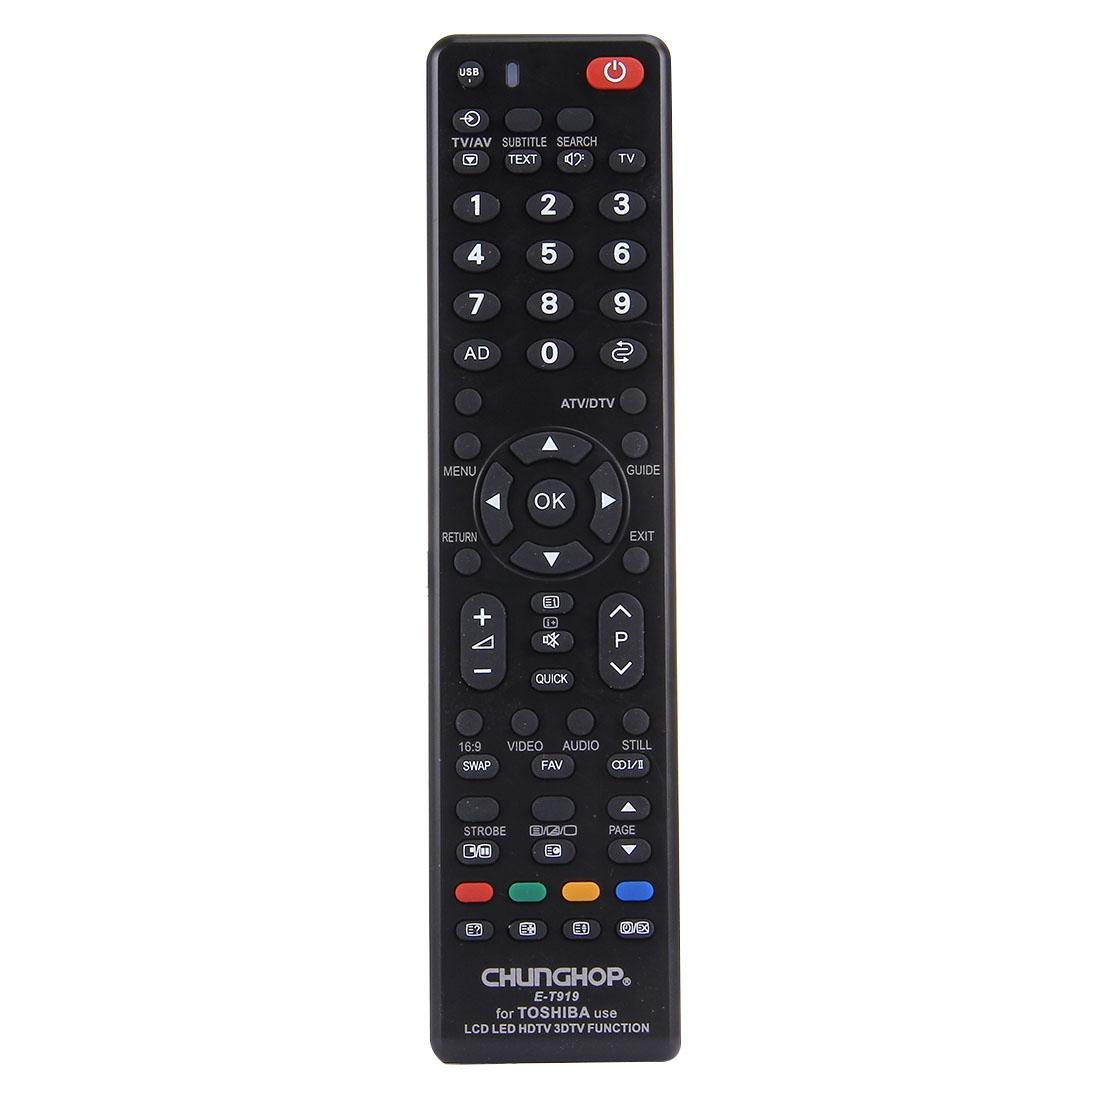 CHUNGHOP E-T919 Universal Remote Controller for TOSHIBA LED TV / LCD TV / HDTV / 3DTV